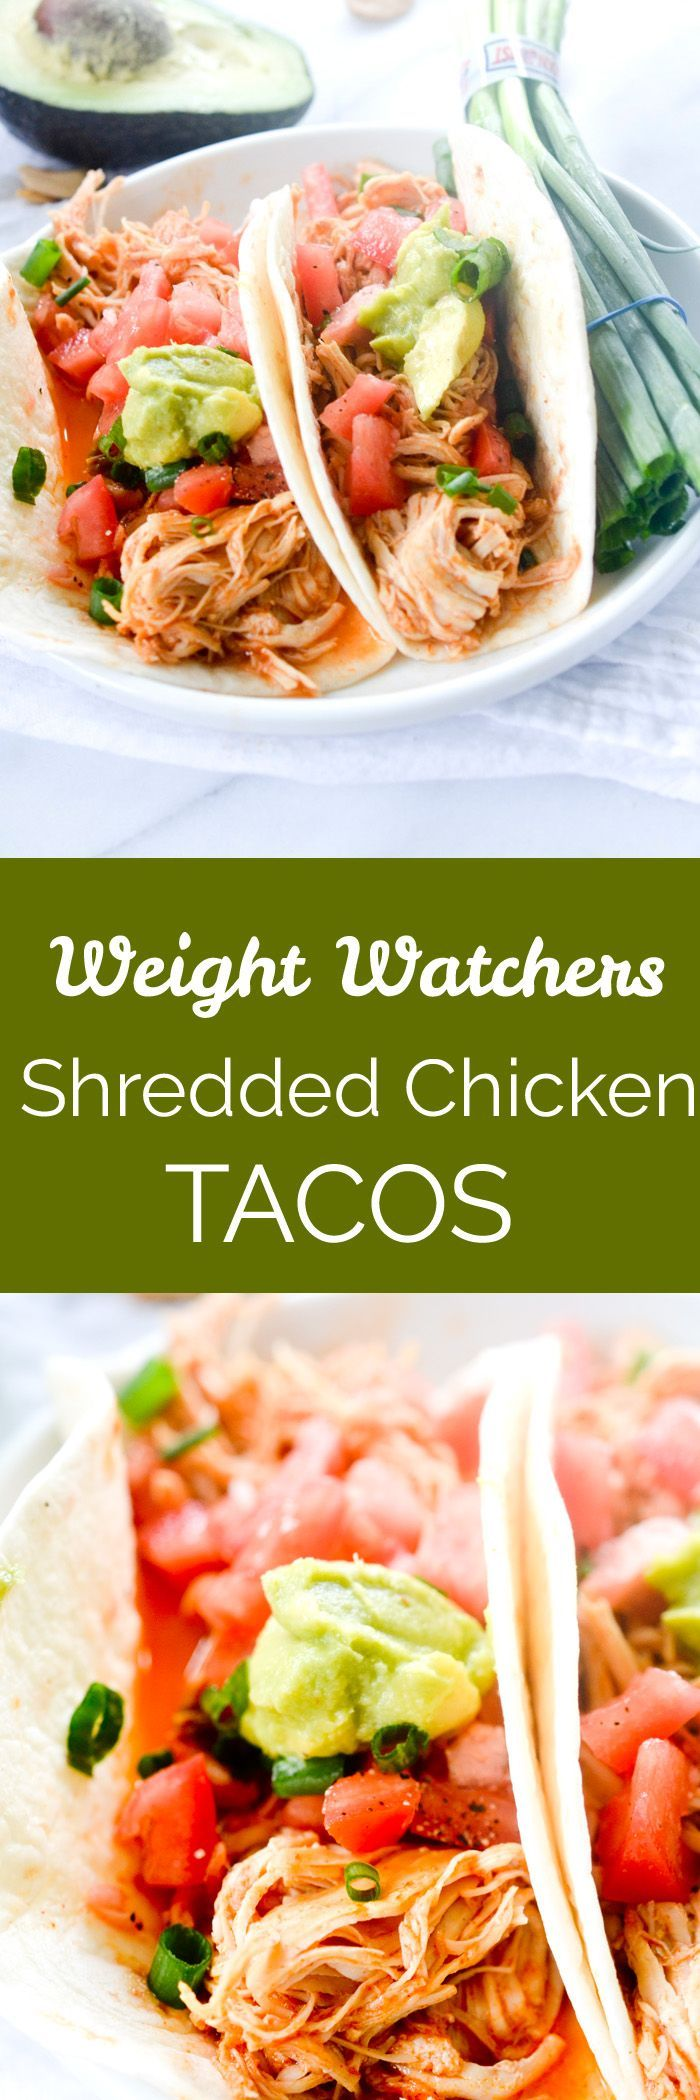 Weight Watchers Shredded Chicken Tacos has four simple ingredients thats made in your slow cooker, for a fast and kid friendly weeknight meal!